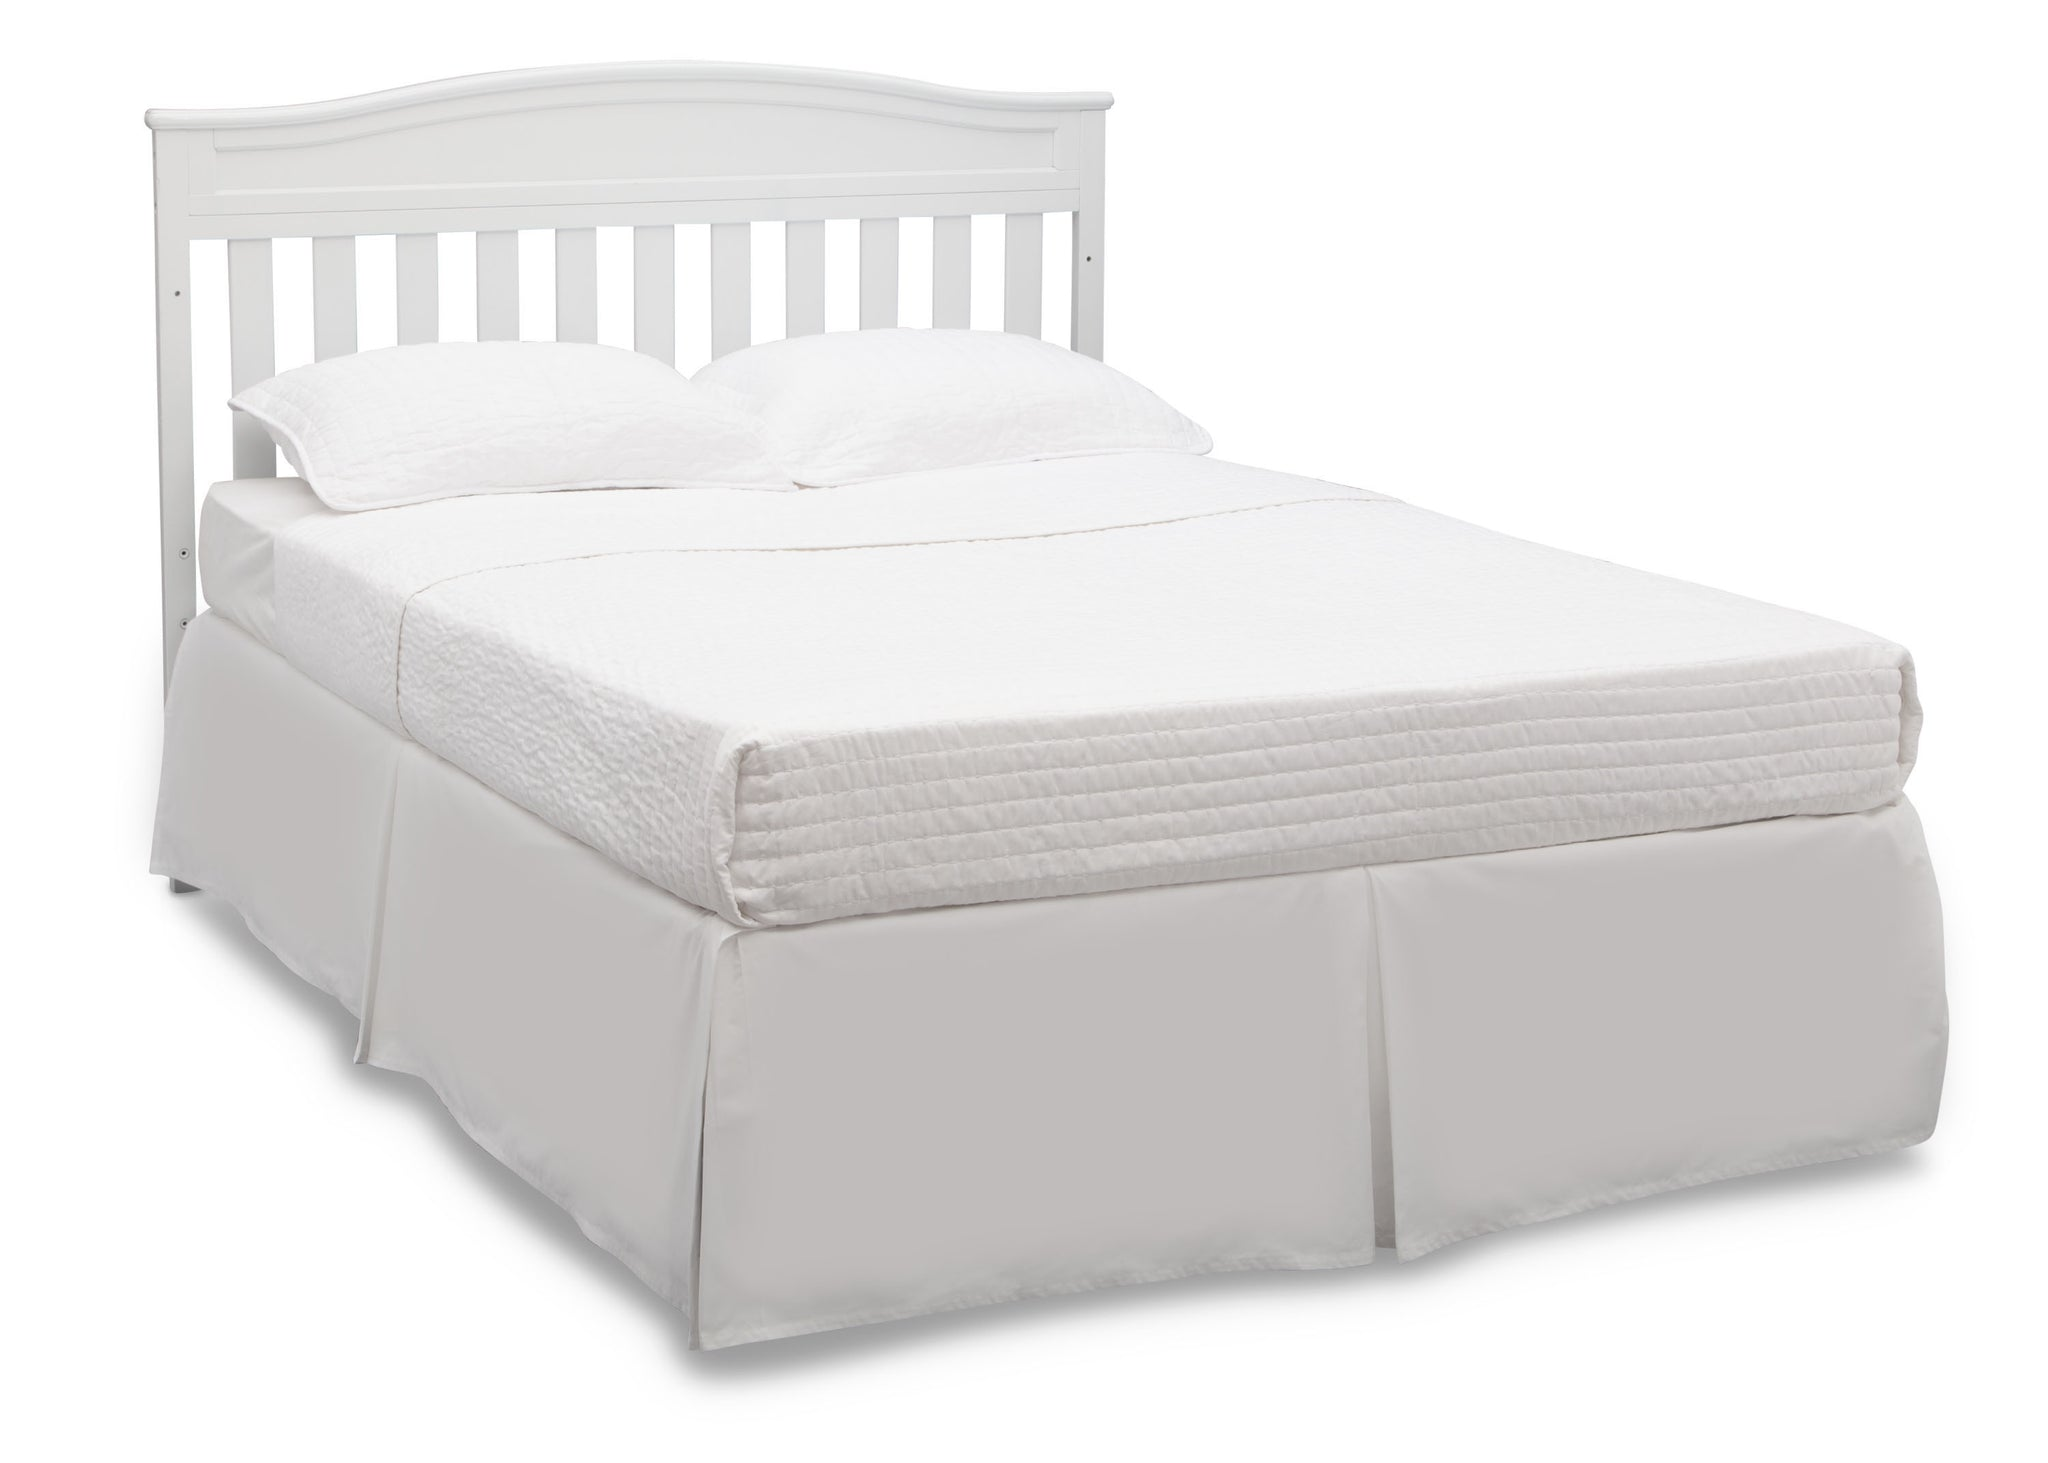 Delta Children White (100) Emery 4-in-1 Crib, Full-Size Bed Conversion a6a